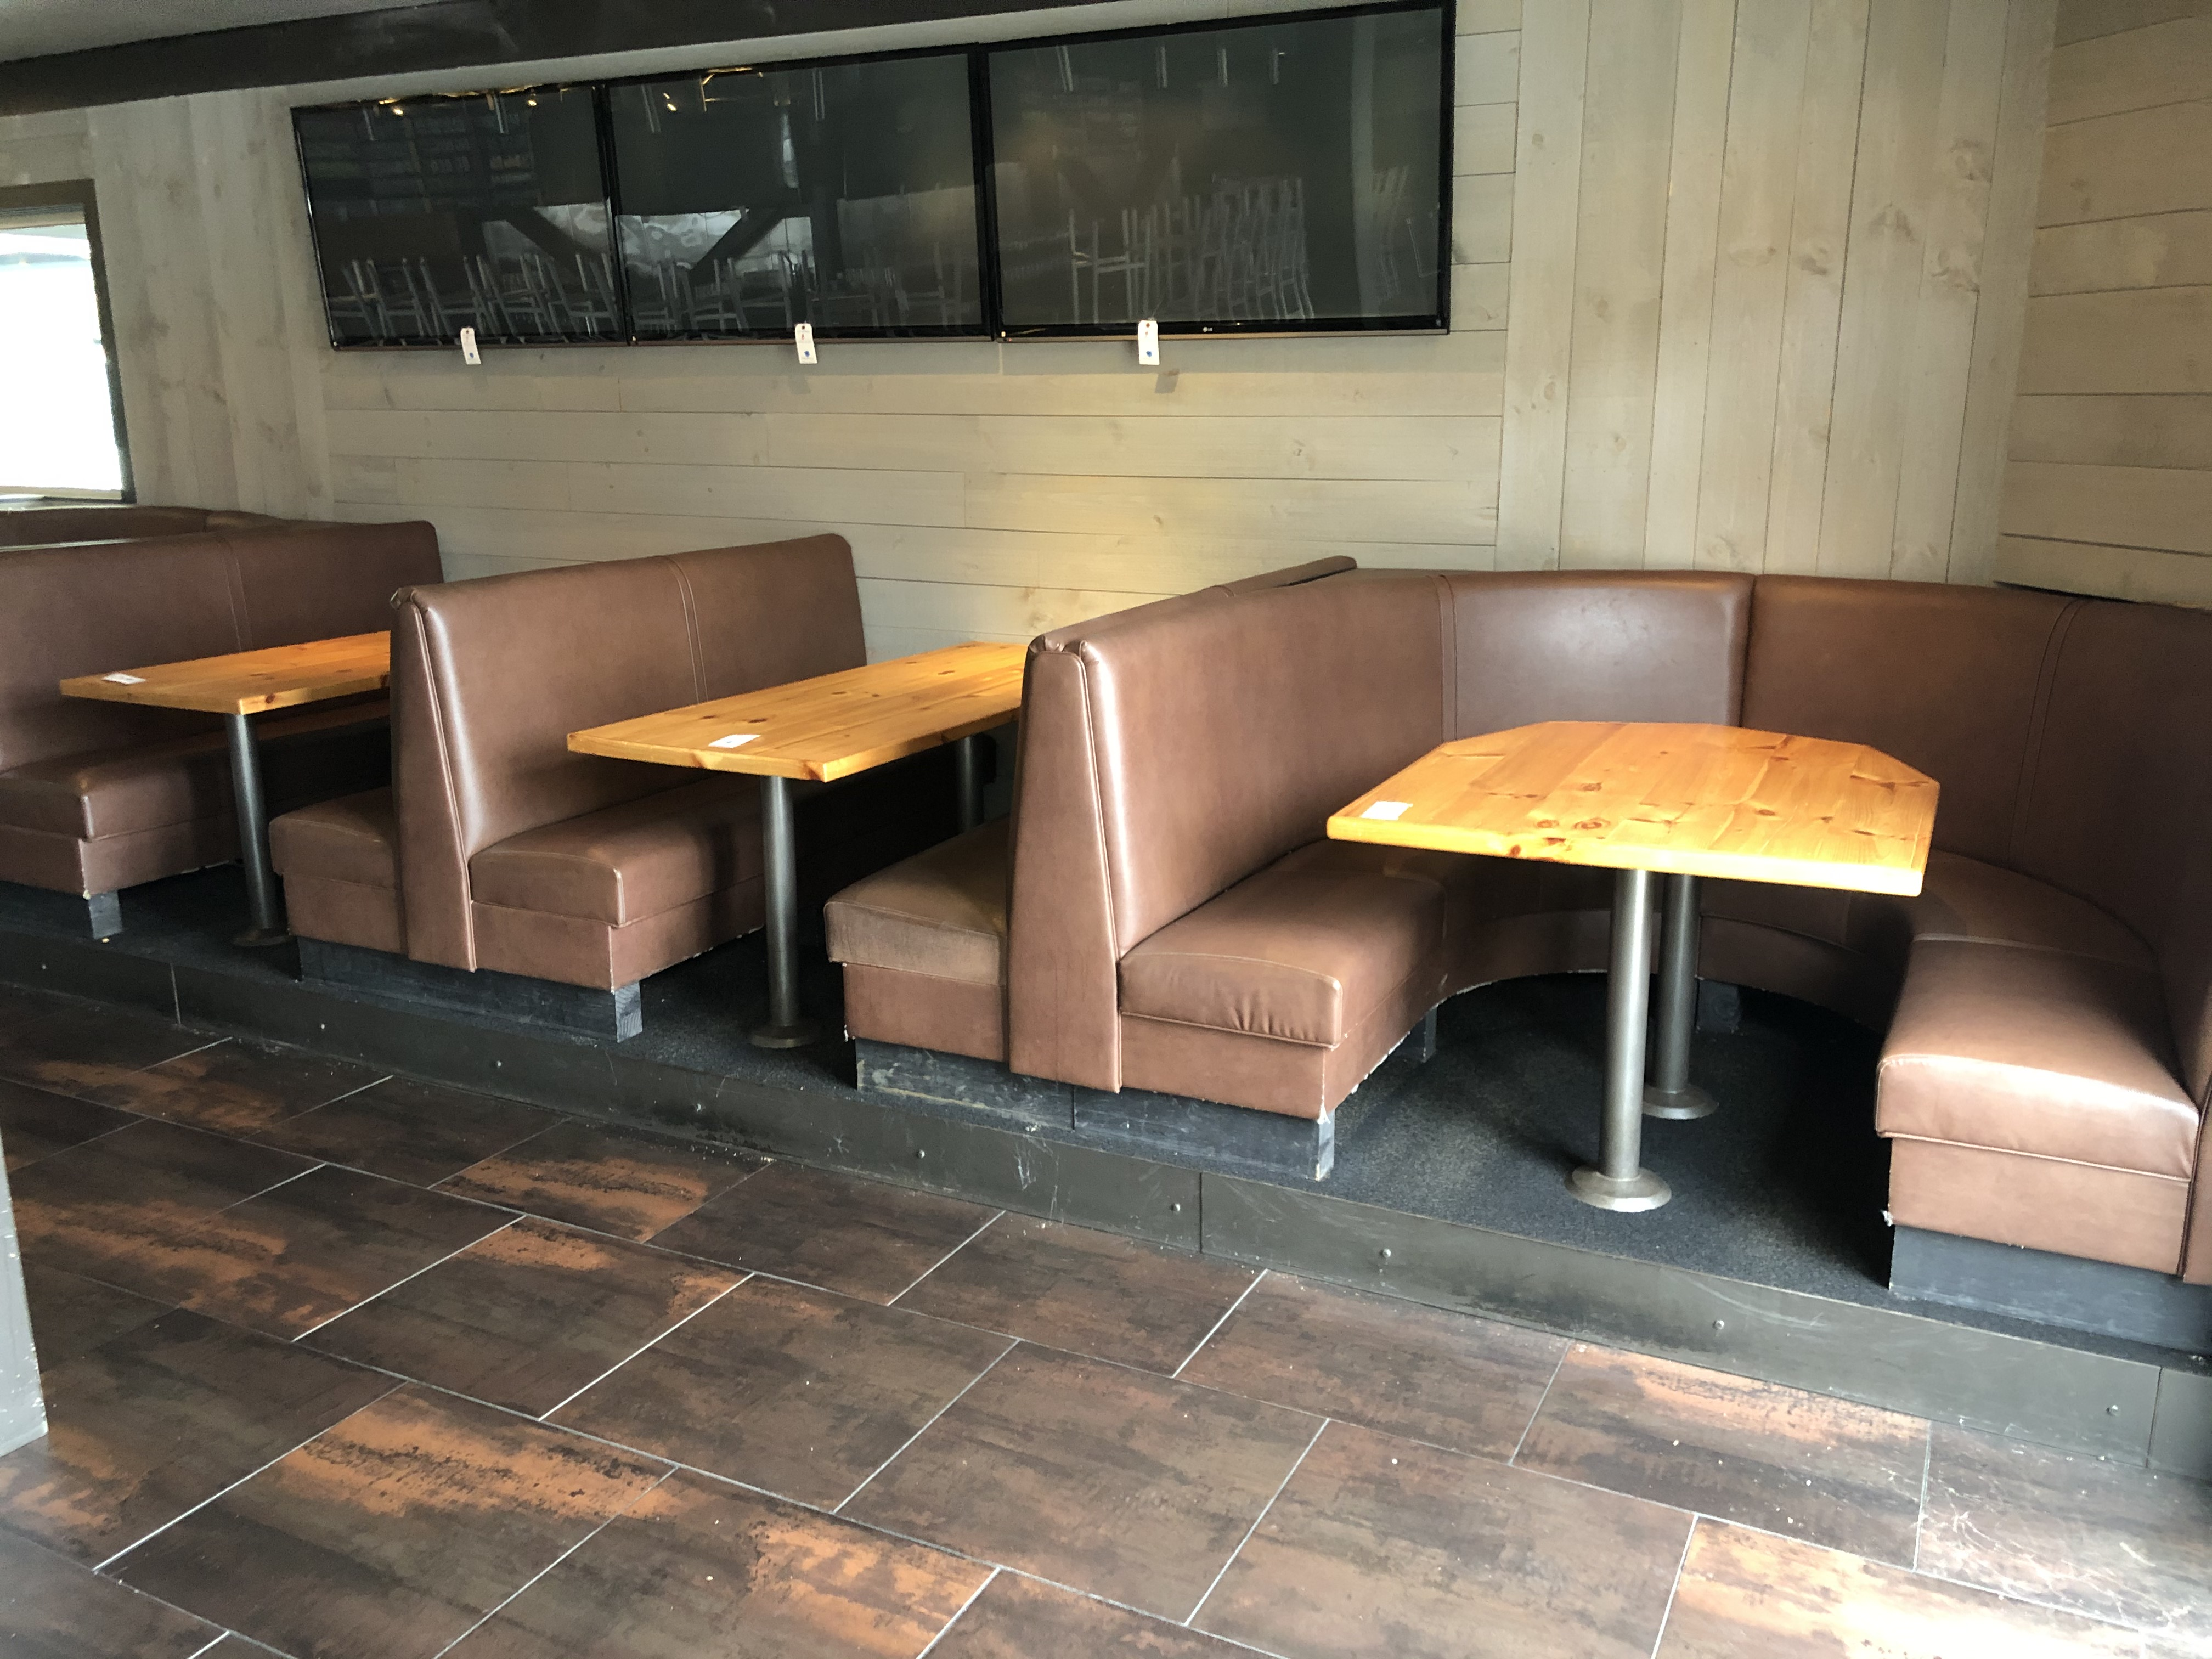 {LOT} (4) Complete Booth Setups c/o: (2) Fully Upholstered U-Shaped 7' x 6' Booths w/Double Pedestal - Image 2 of 4